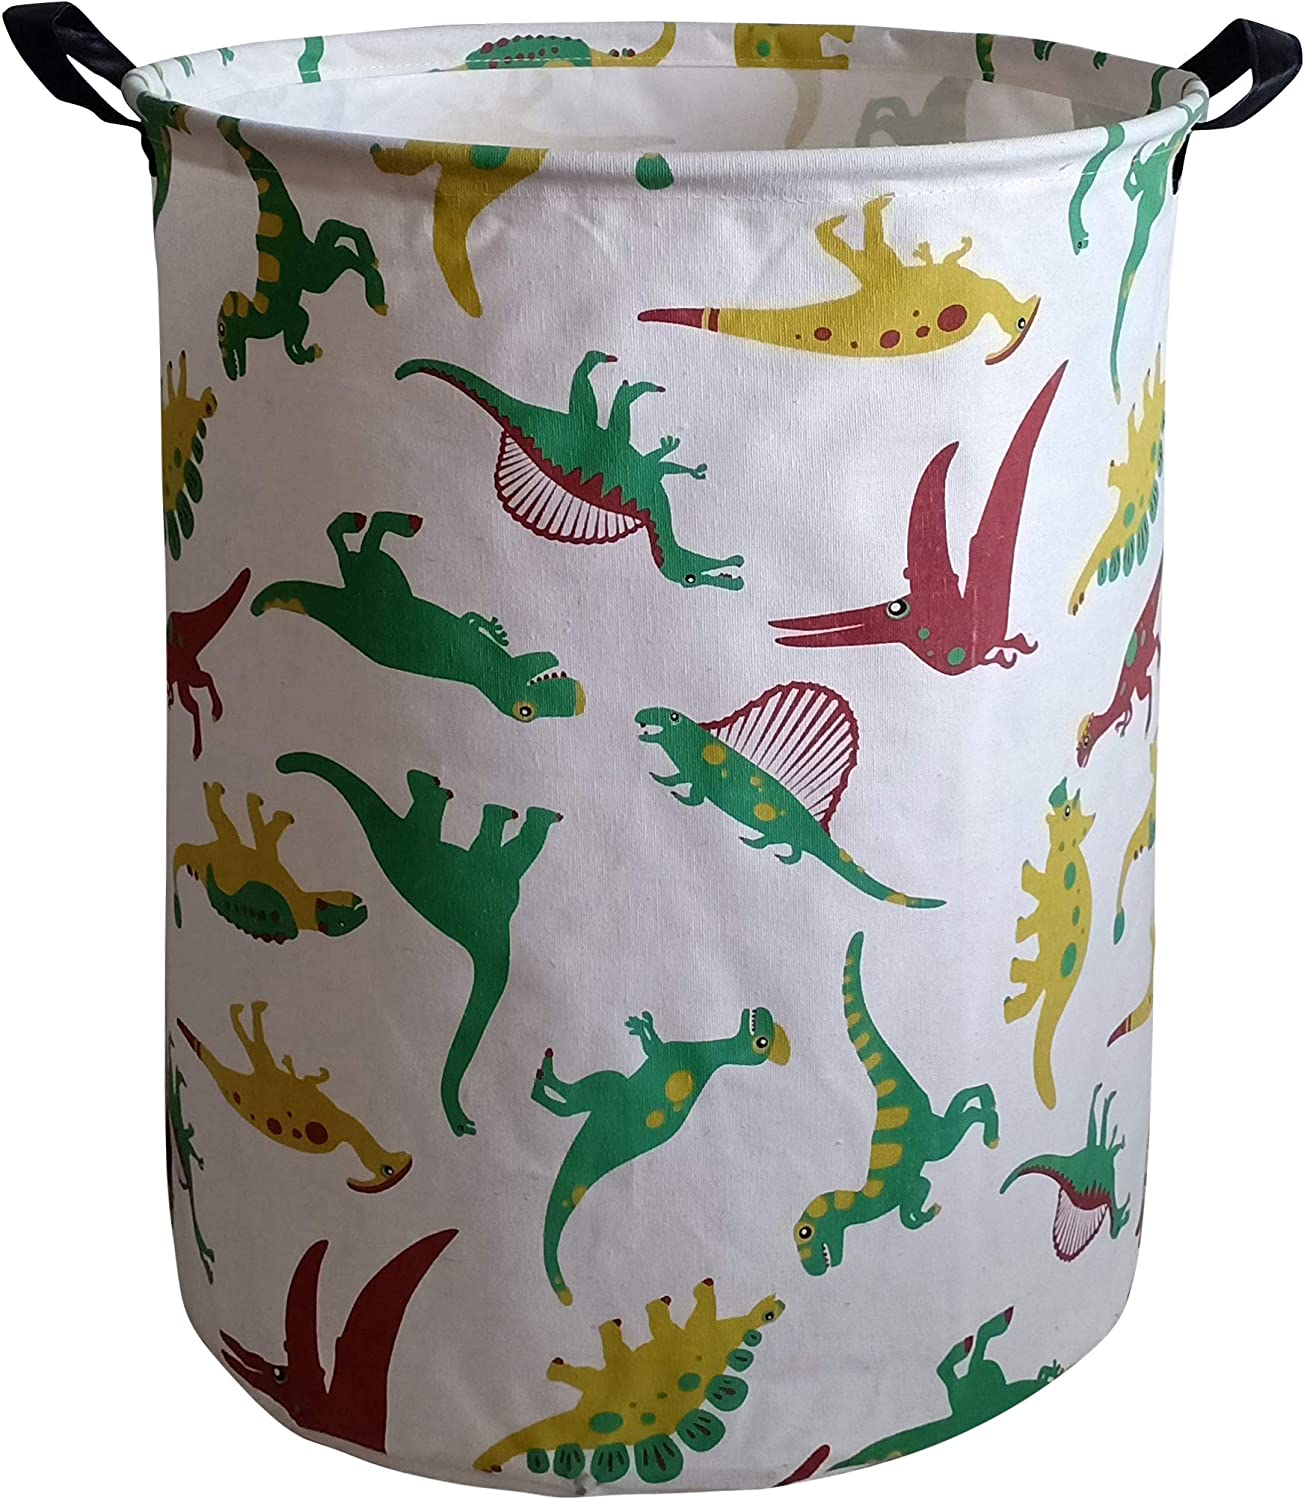 KUNRO Large Sized Storage Basket Waterproof Coating Organizer Bin Laundry Hamper for Nursery Clothes Toys (Dinosaur)